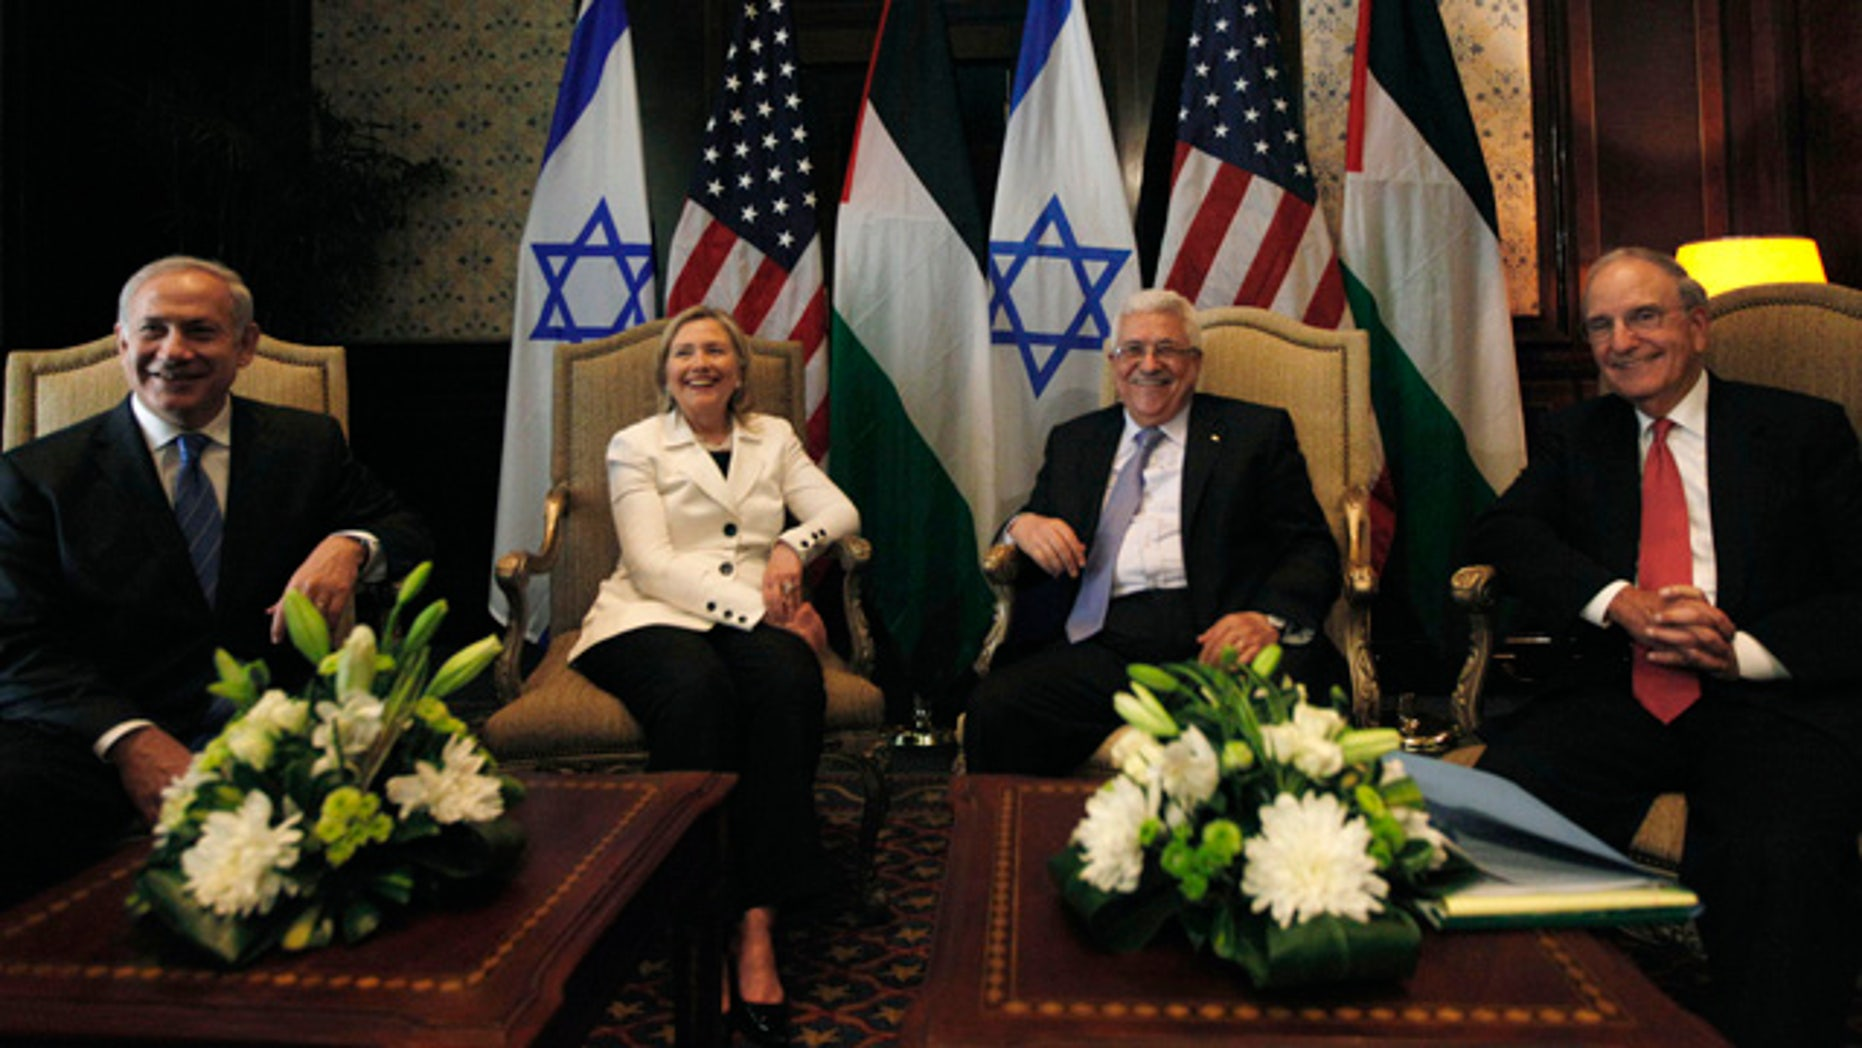 Sept. 14: From left, Israeli prime minister Benjamin Netanyahu, U.S. secretary of state Hillary Rodham Clinton, Palestinian president Mahmoud Abbas and U.S. Middle East envoy George Mitchell attend the bilateral talks at the Red Sea resort of Sharm el-Sheikh, Egypt.